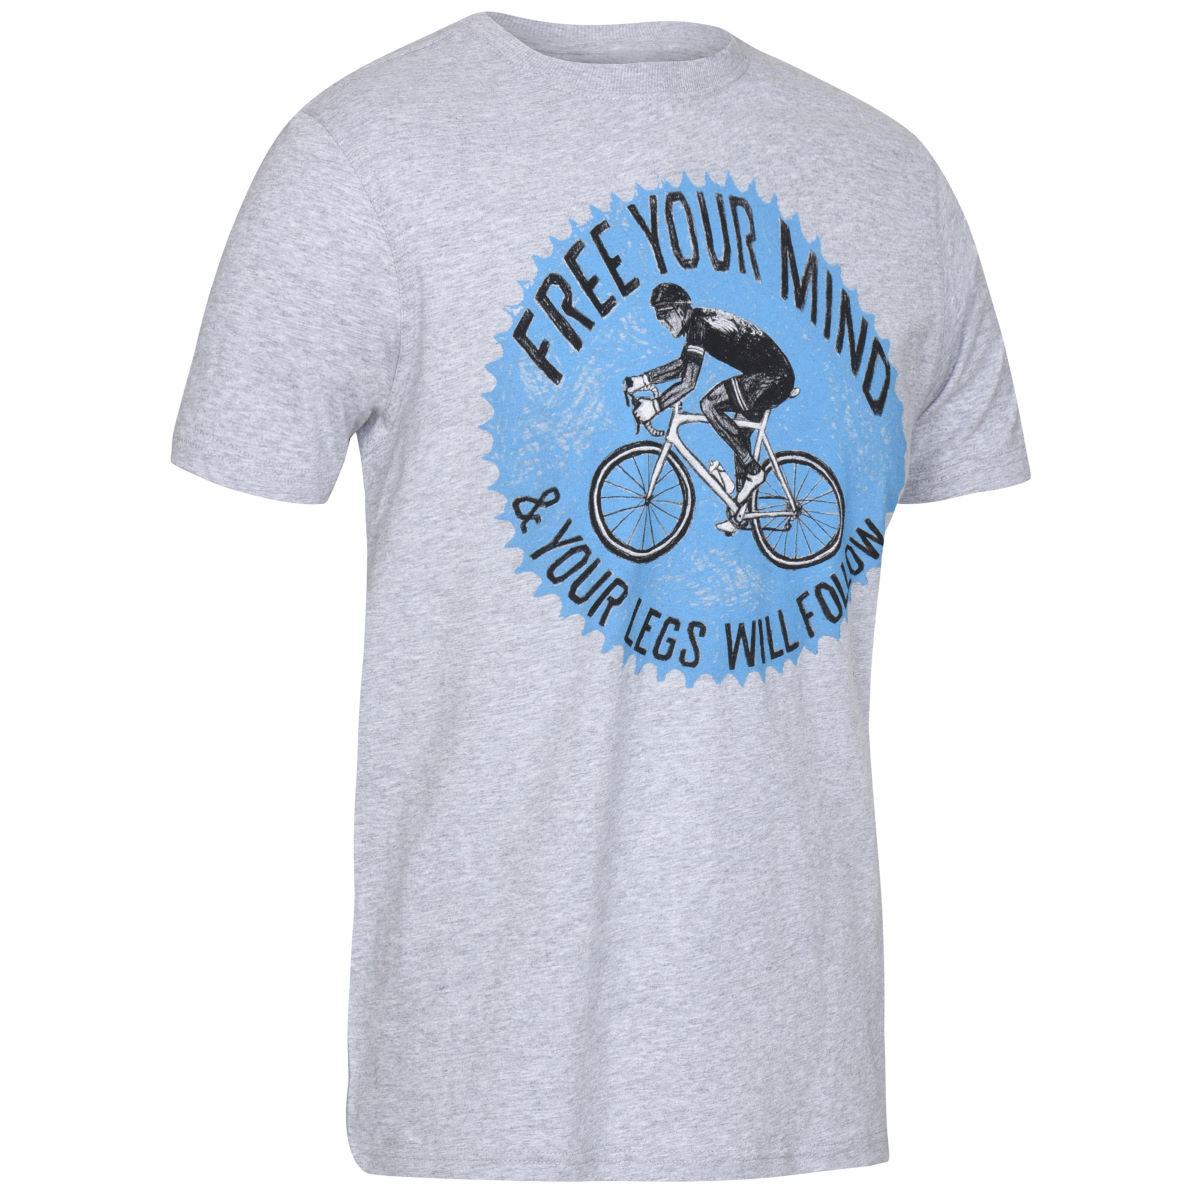 Camiseta Cycology Free Your Mind - Camisetas